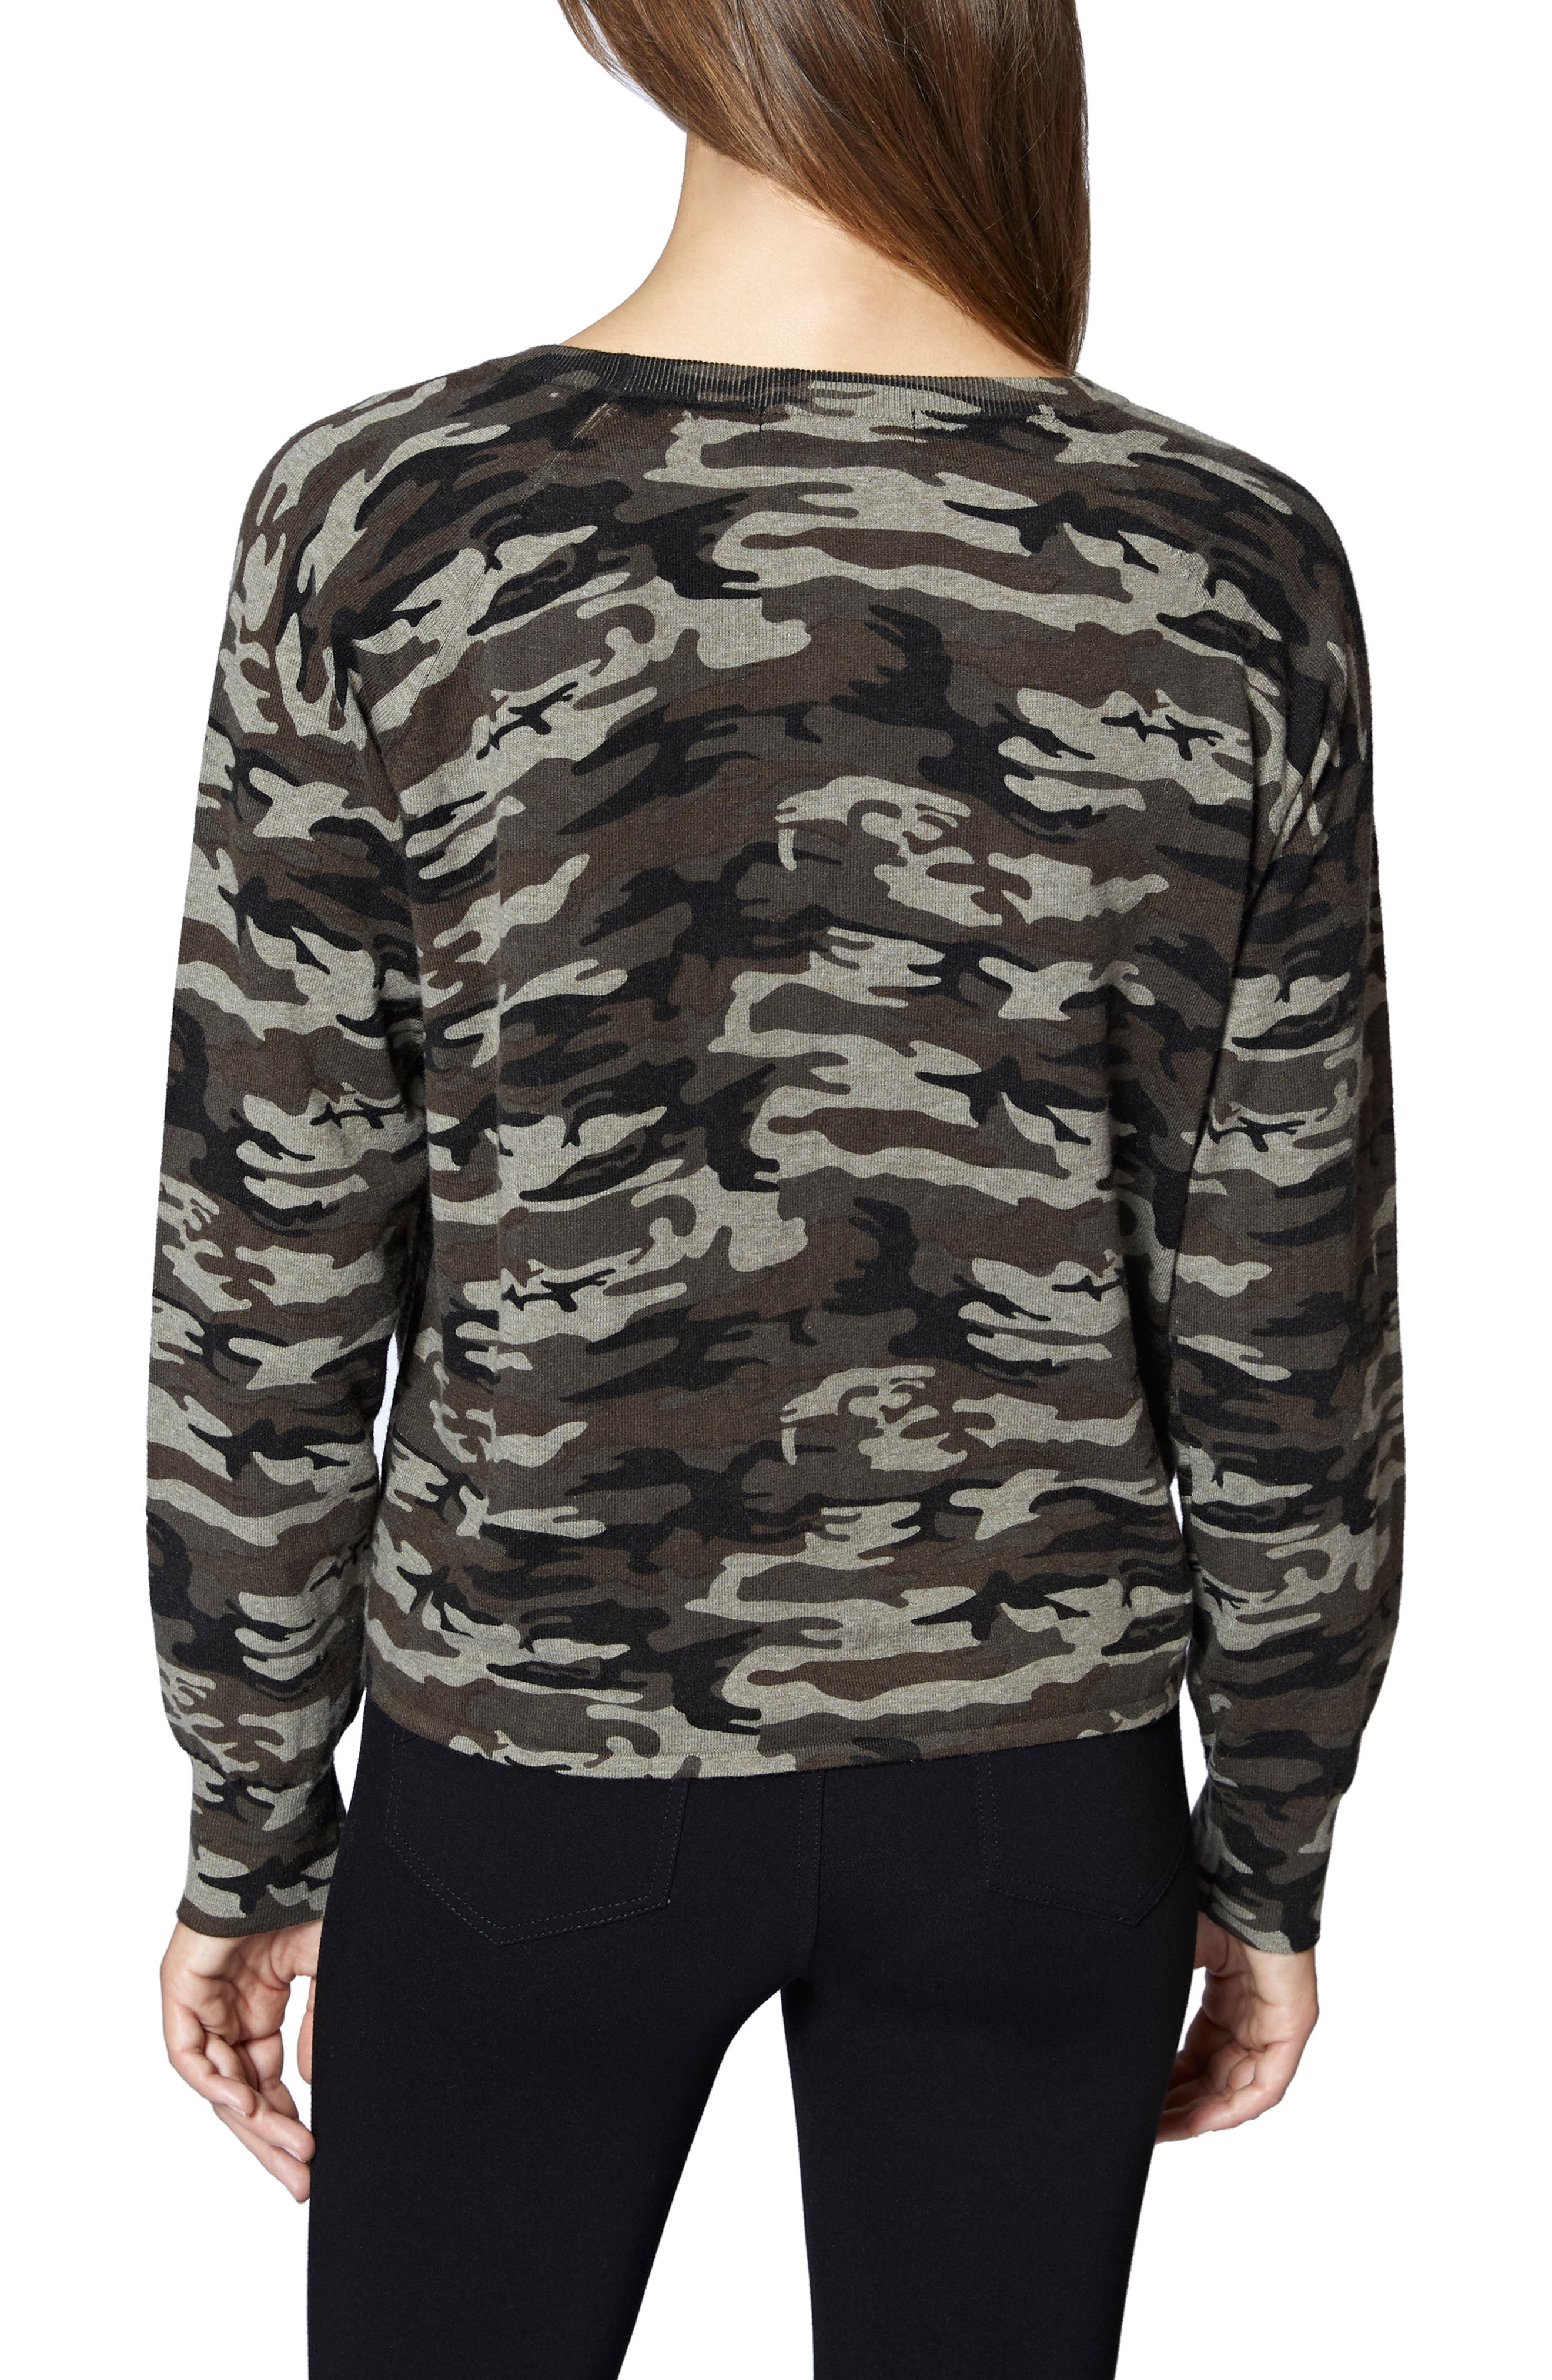 Laguna Camouflage Tie Front Top,                             Alternate thumbnail 2, color,                             HUMAN NATURE CAMO